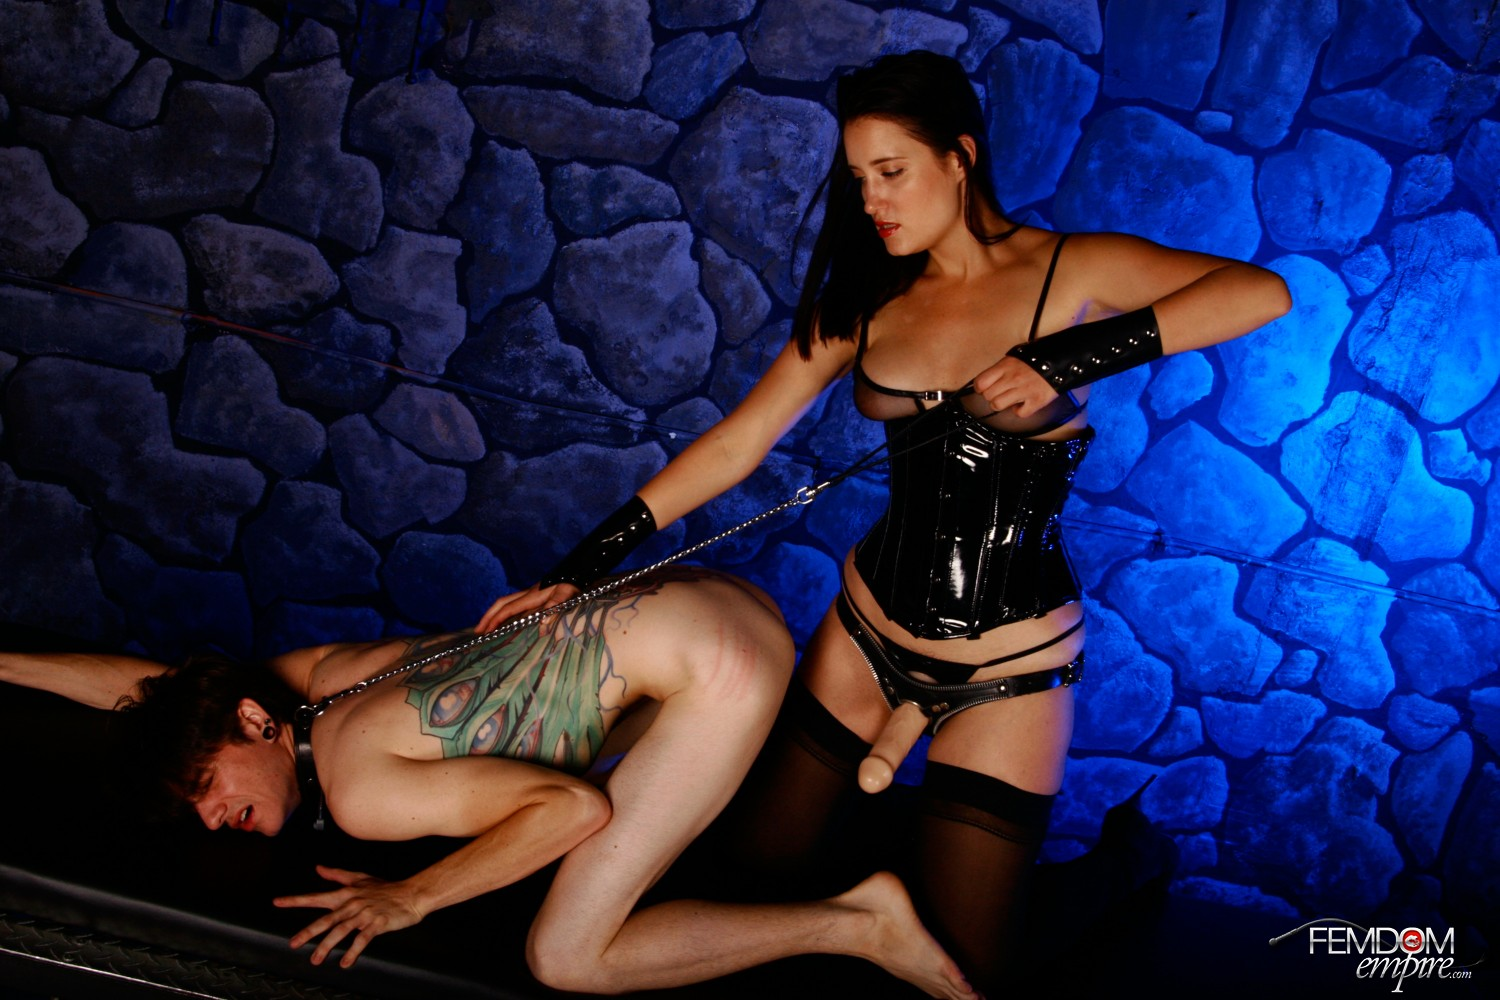 Domina Kimberly Kane makes her marionette submit to her strapon.